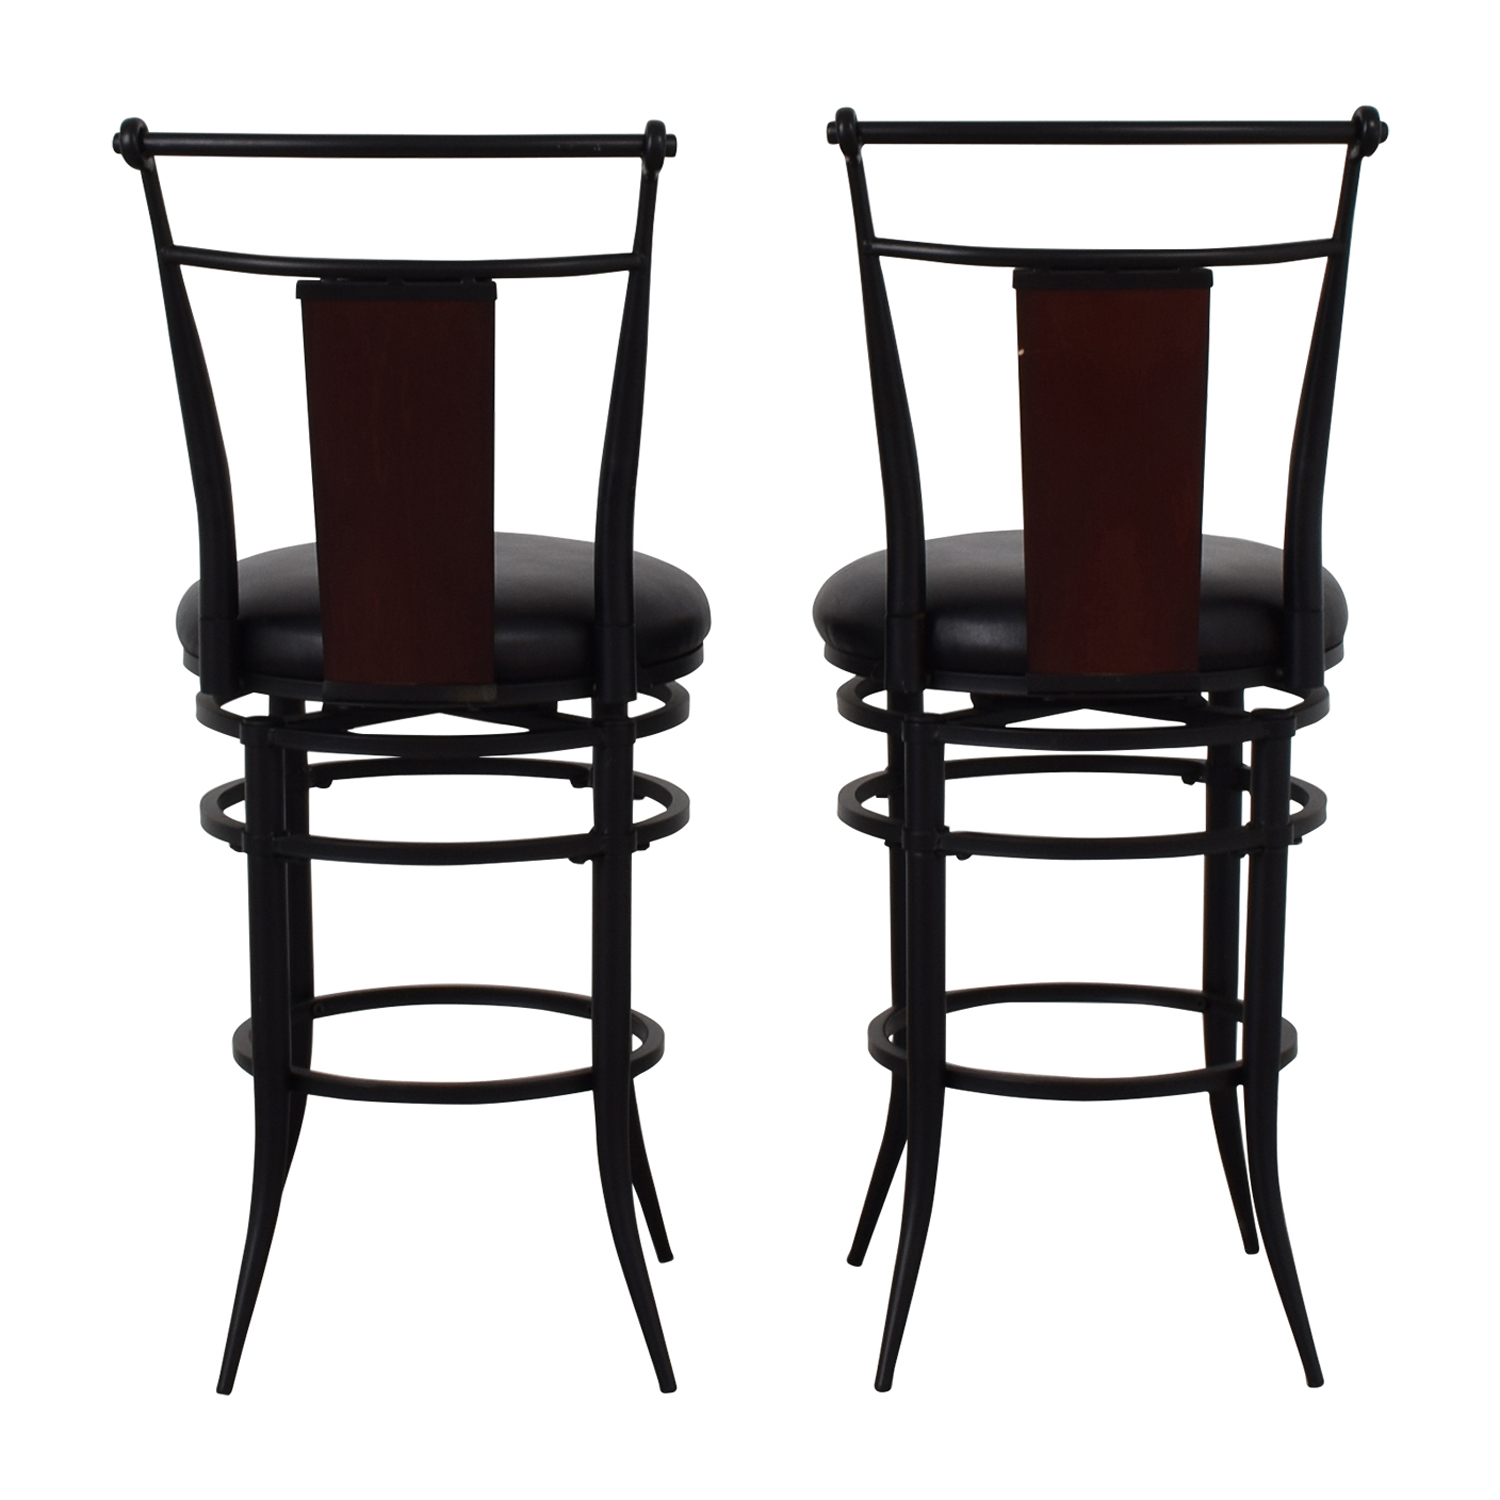 Hillsdale Furniture Hillsdale Furniture Midtown Black Swivel Counter Stools Stools